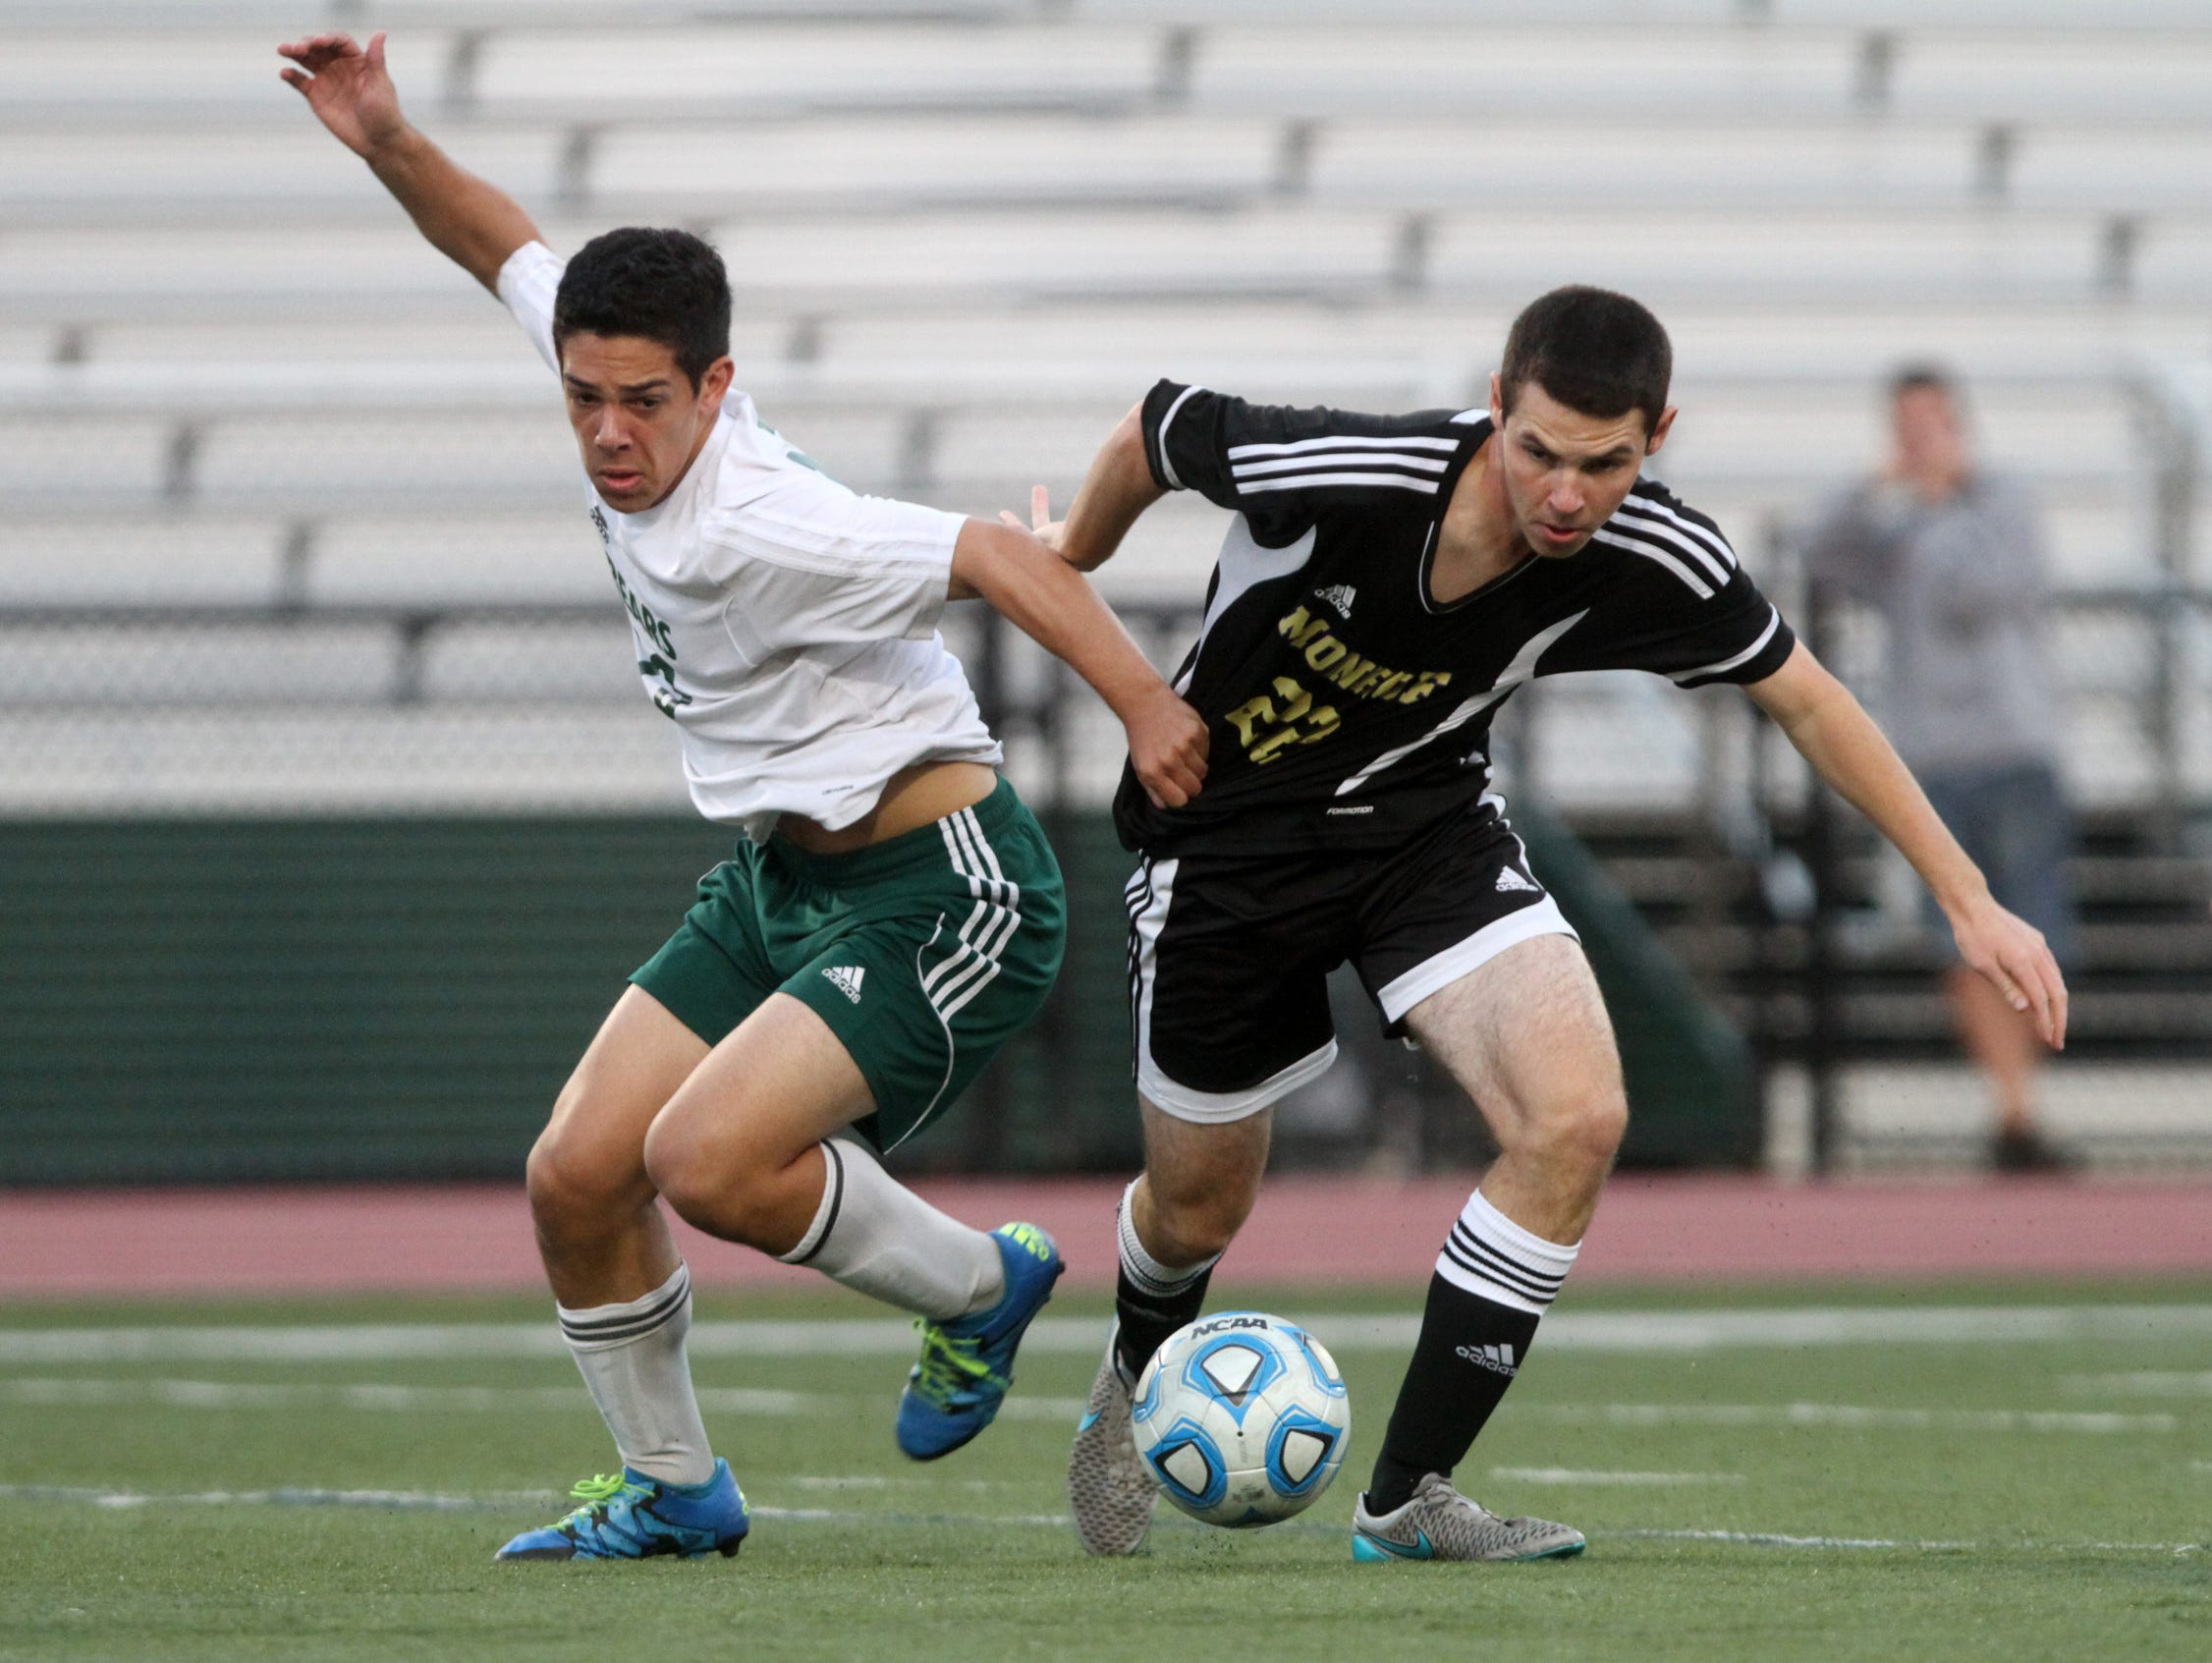 East Brunswick's Jason Kramer battles with Monroe's Ryan McCabe during the first half, Thursday, October 8, 2015, in East Brunswick, NJ.